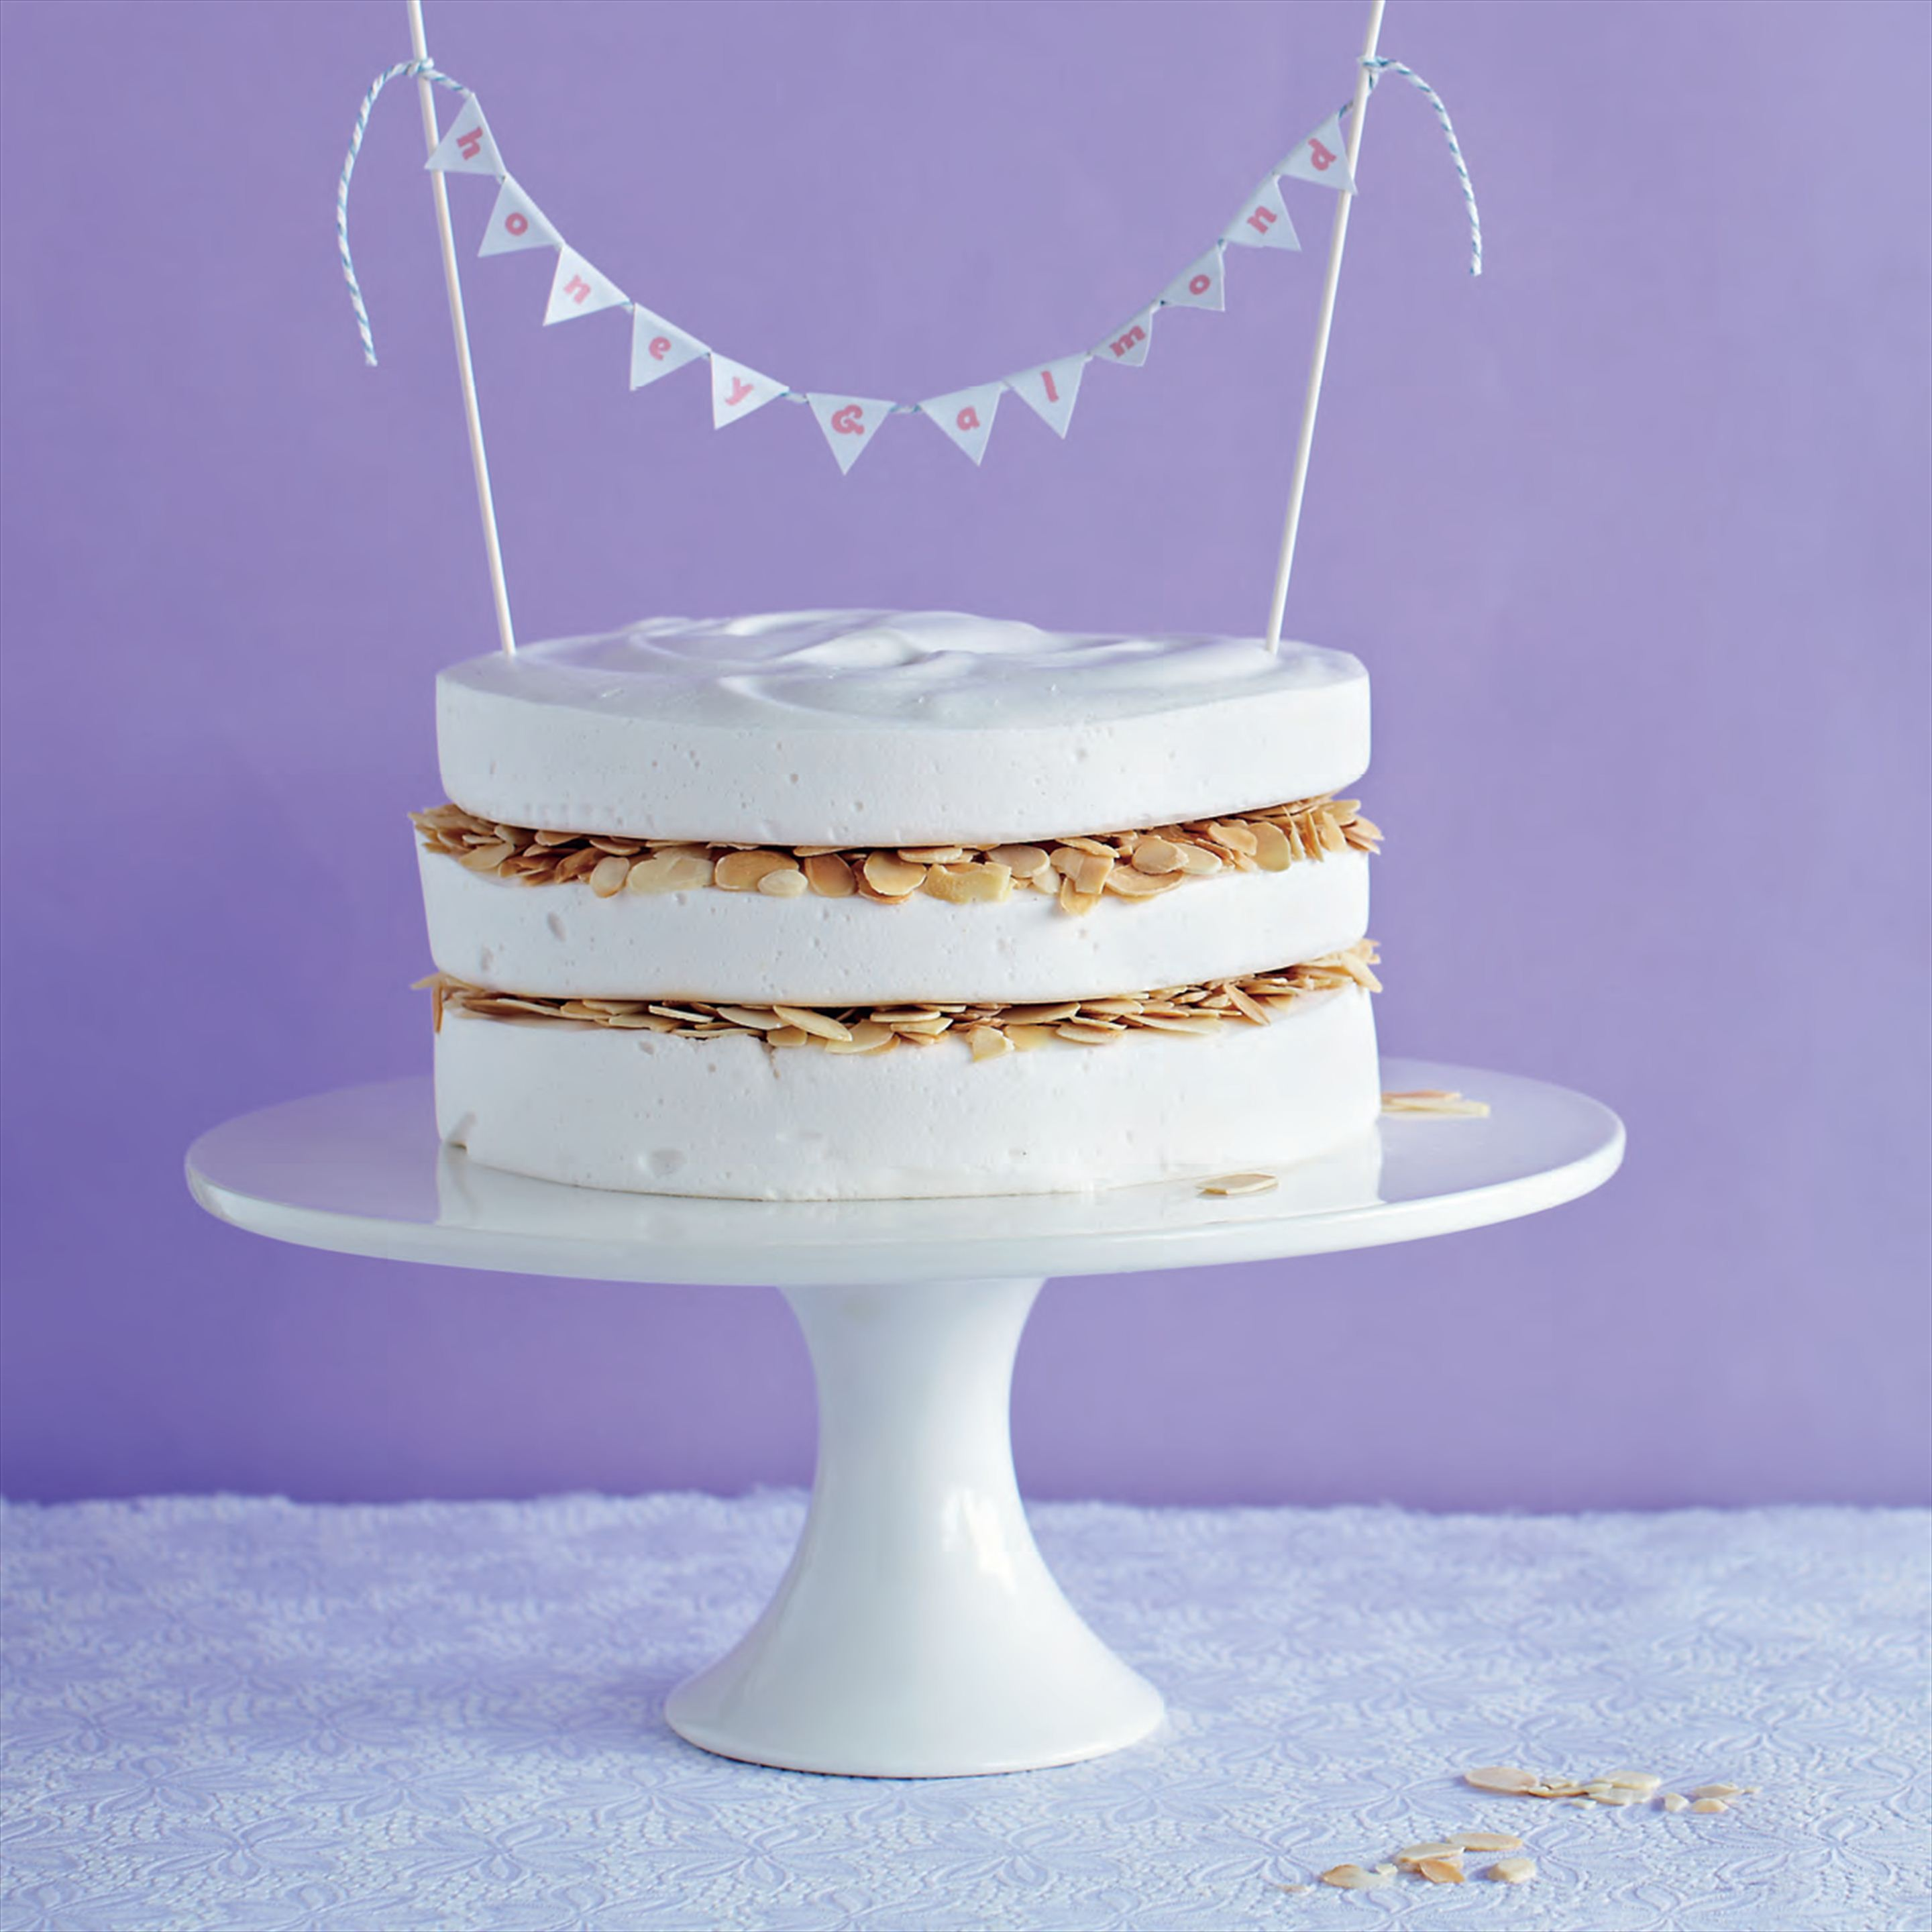 Honey & almond marshmallow cake